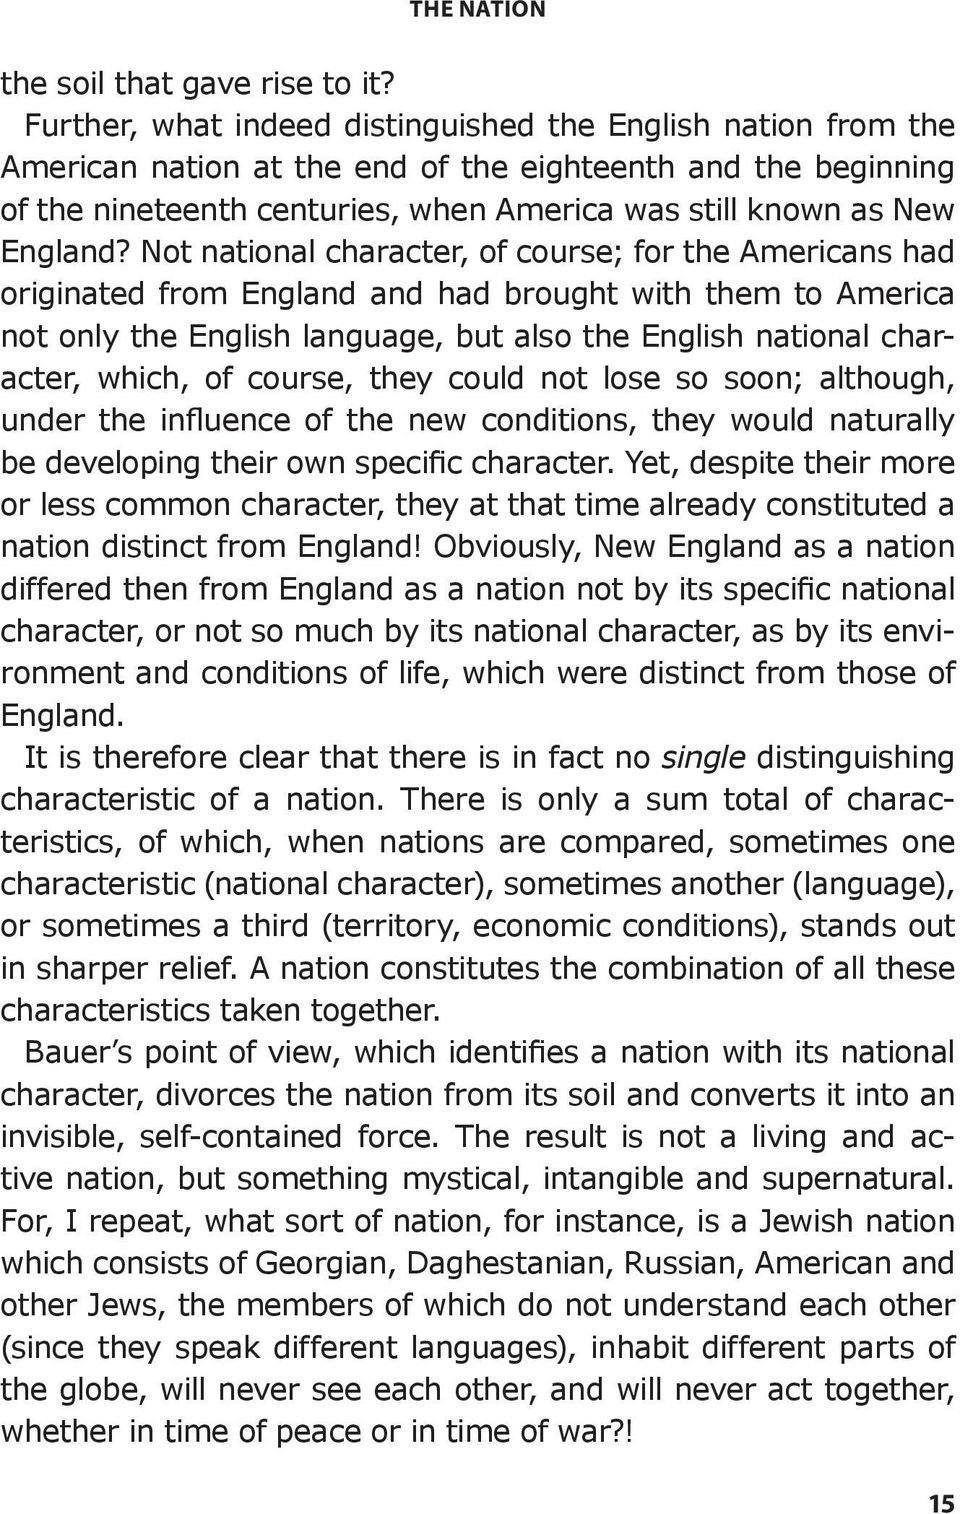 Not national character, of course; for the Americans had originated from England and had brought with them to America not only the English language, but also the English national character, which, of